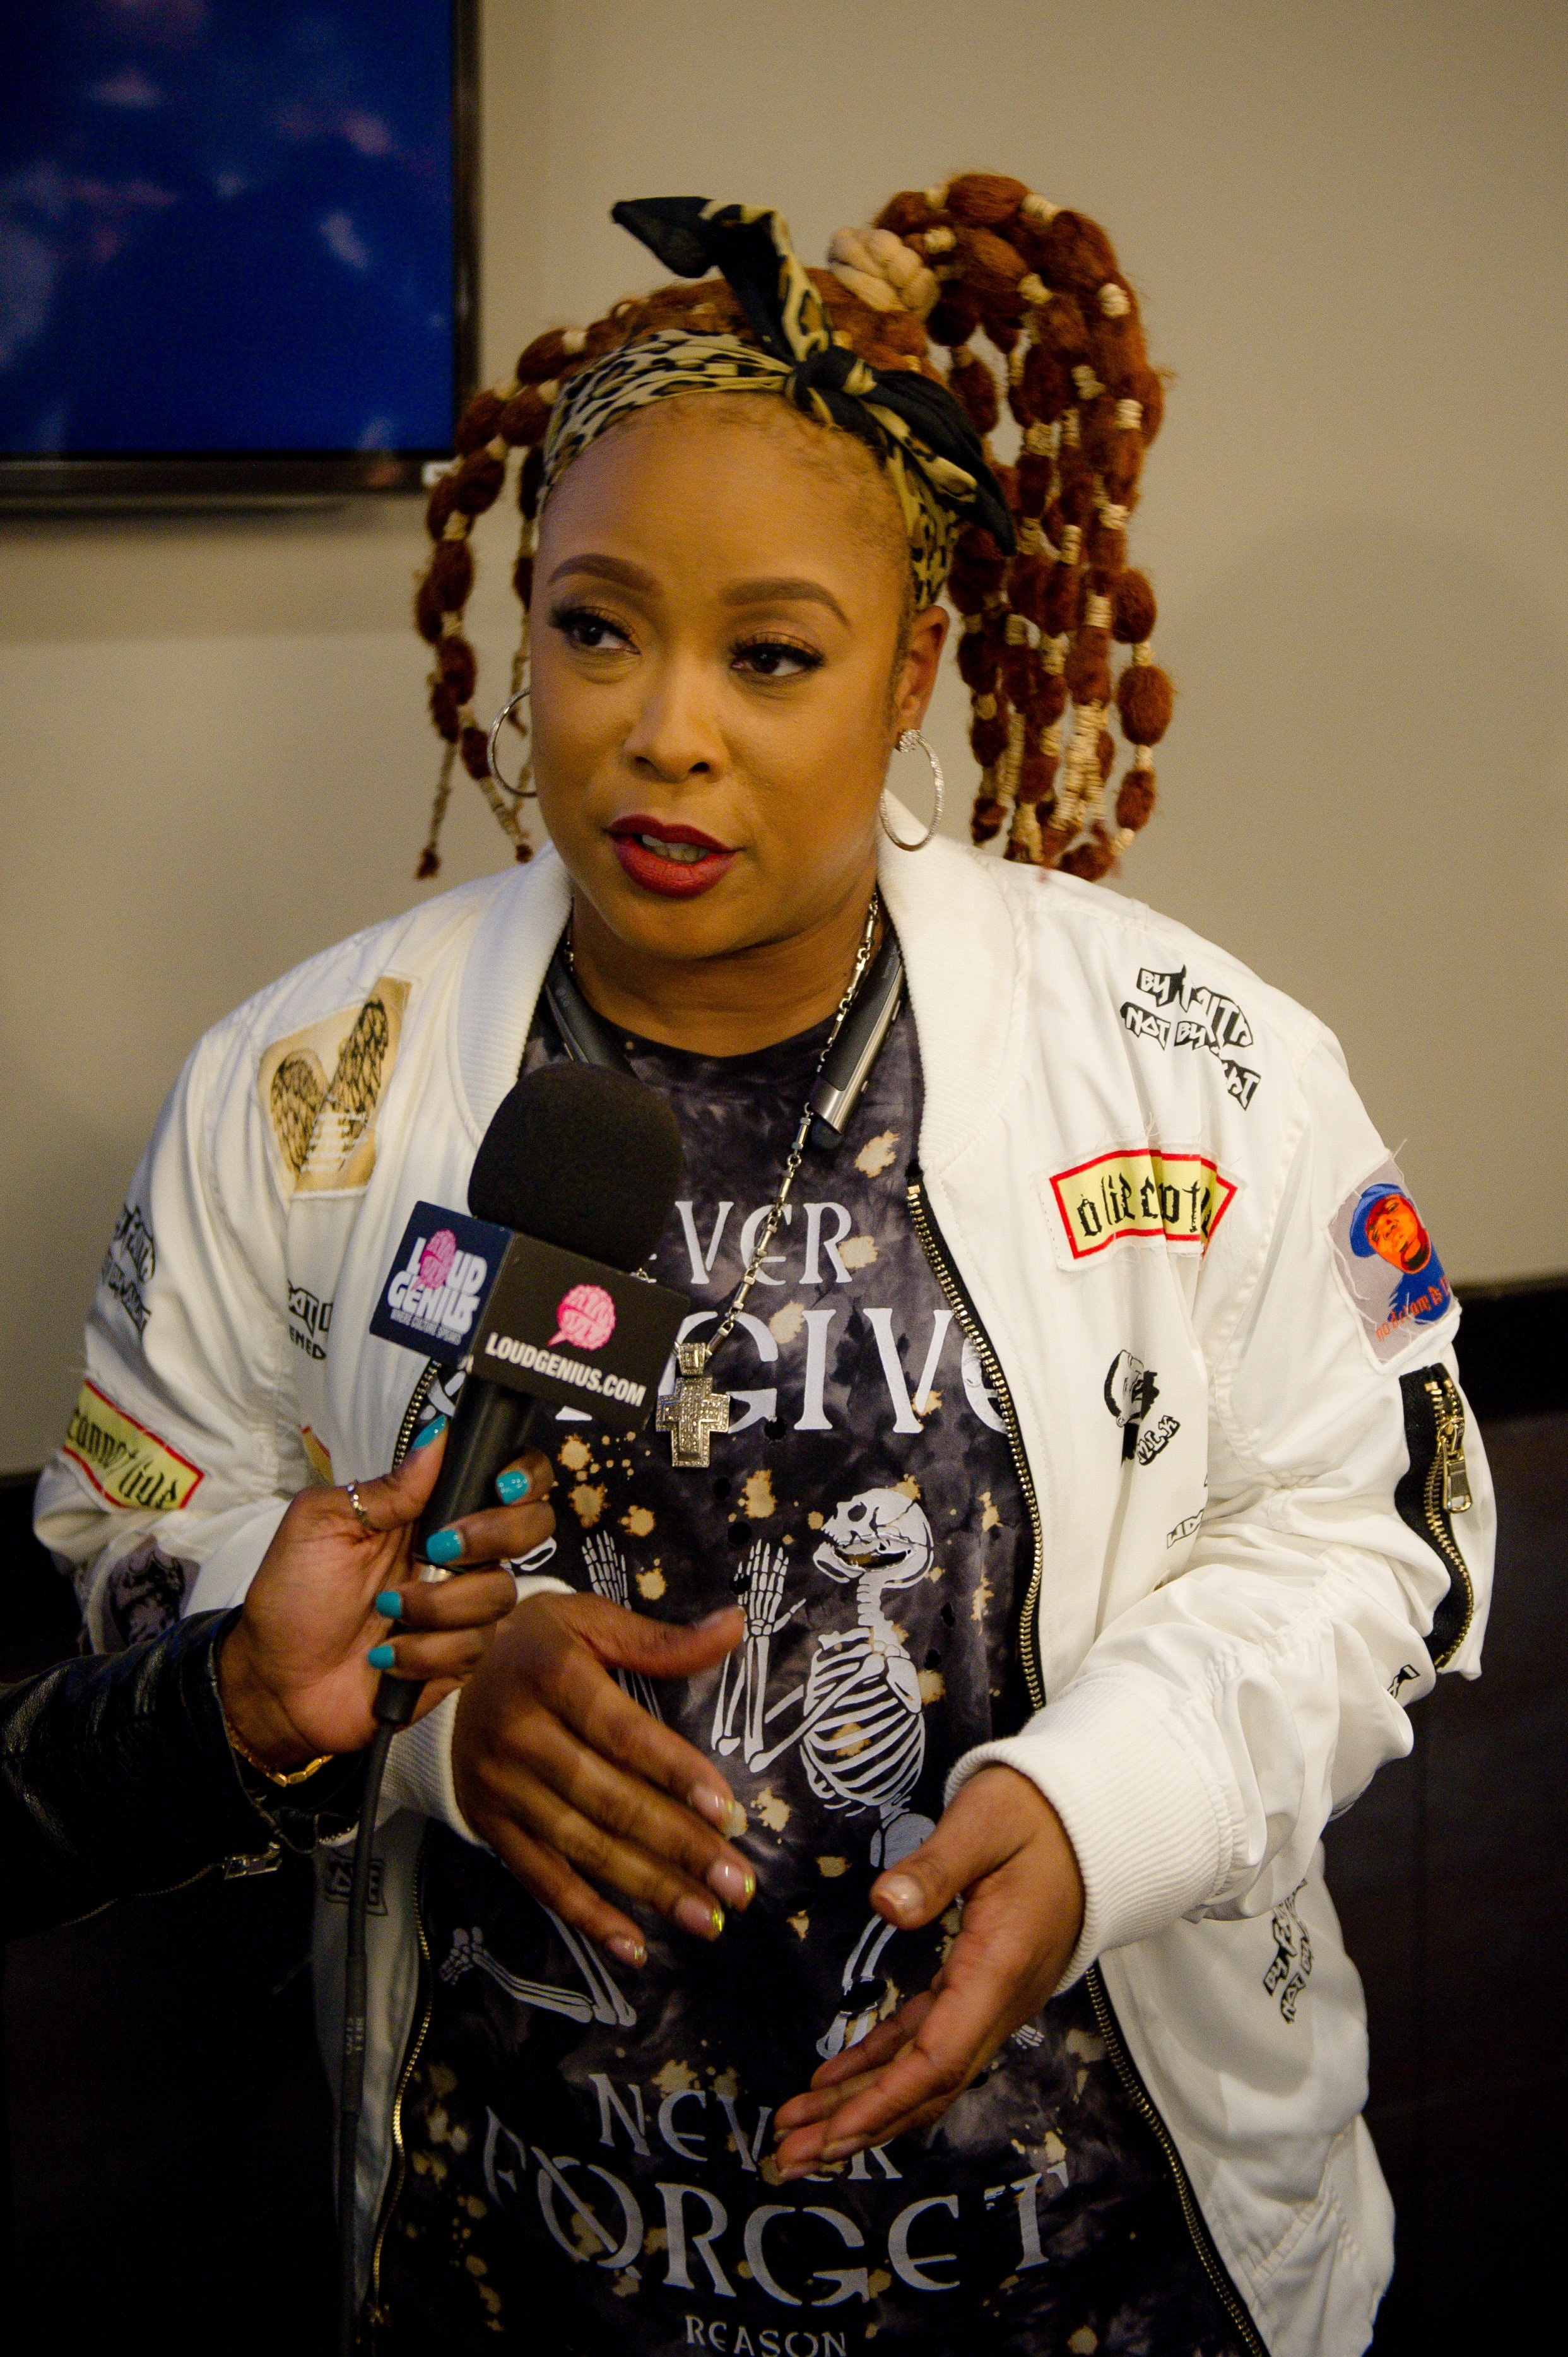 Rapper Da Brat attends the 2017 SoSoSummer17 concert tour press conference at the Topgolf Midtown in Atlanta. | Photo: Getty Images